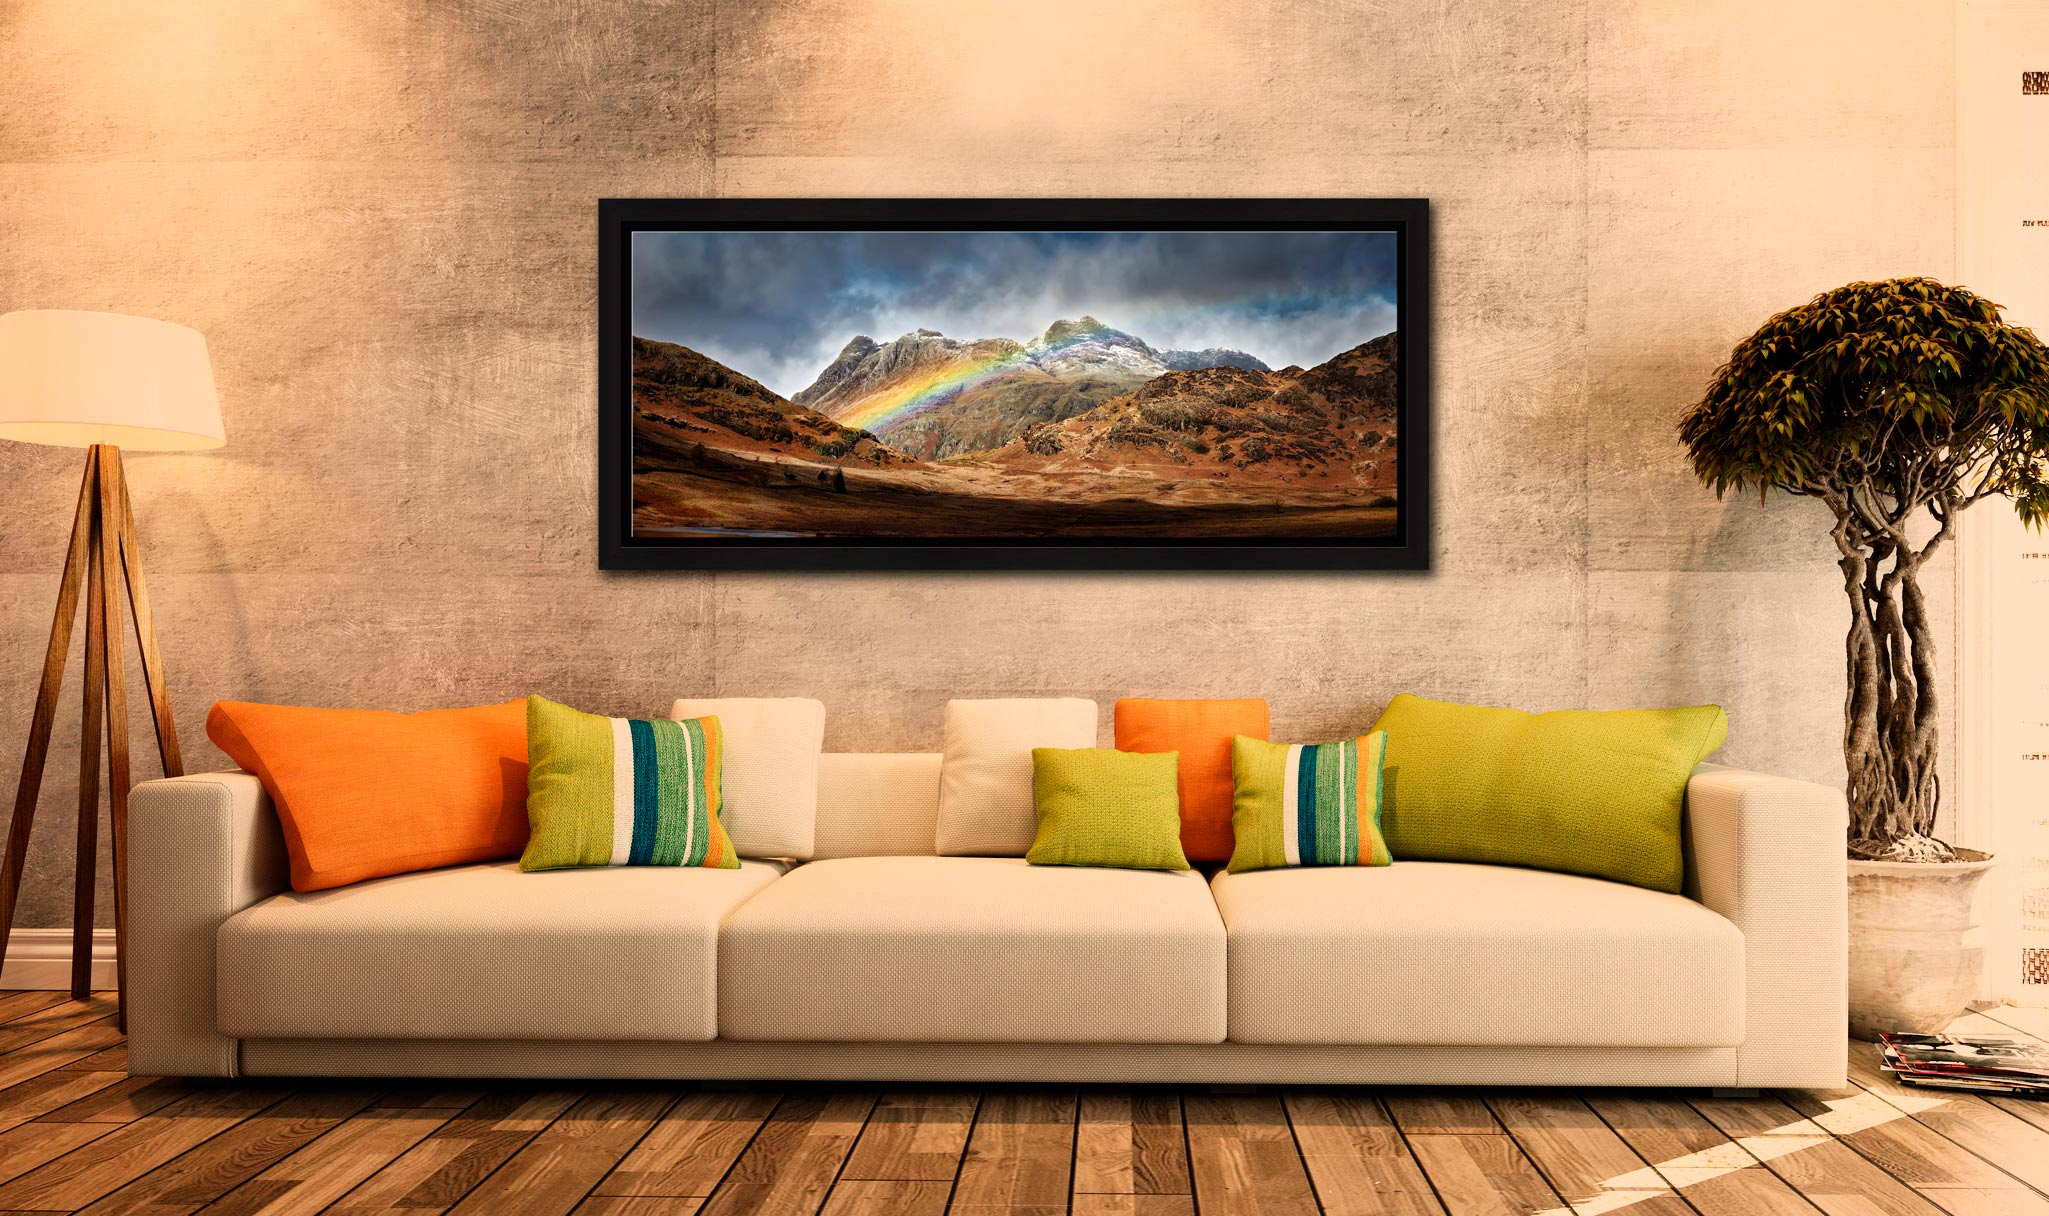 Langdale Pikes Rainbow - Black oak floater frame with acrylic glazing on Wall